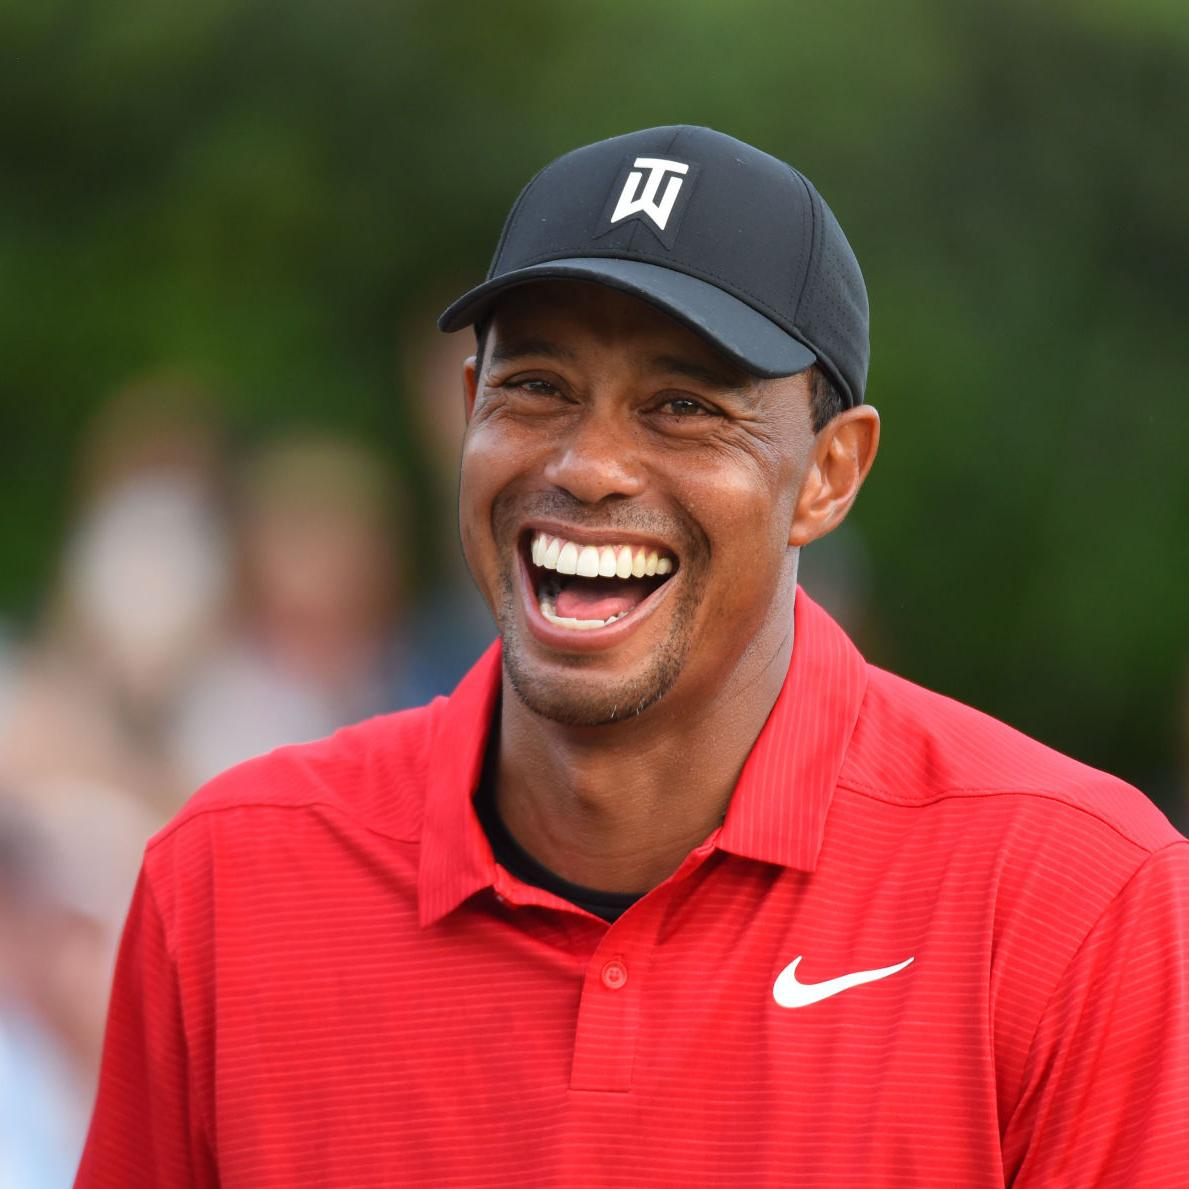 PHOTOS: Tiger Woods ends 5-year winless drought with win in Atlanta at Tour Championship